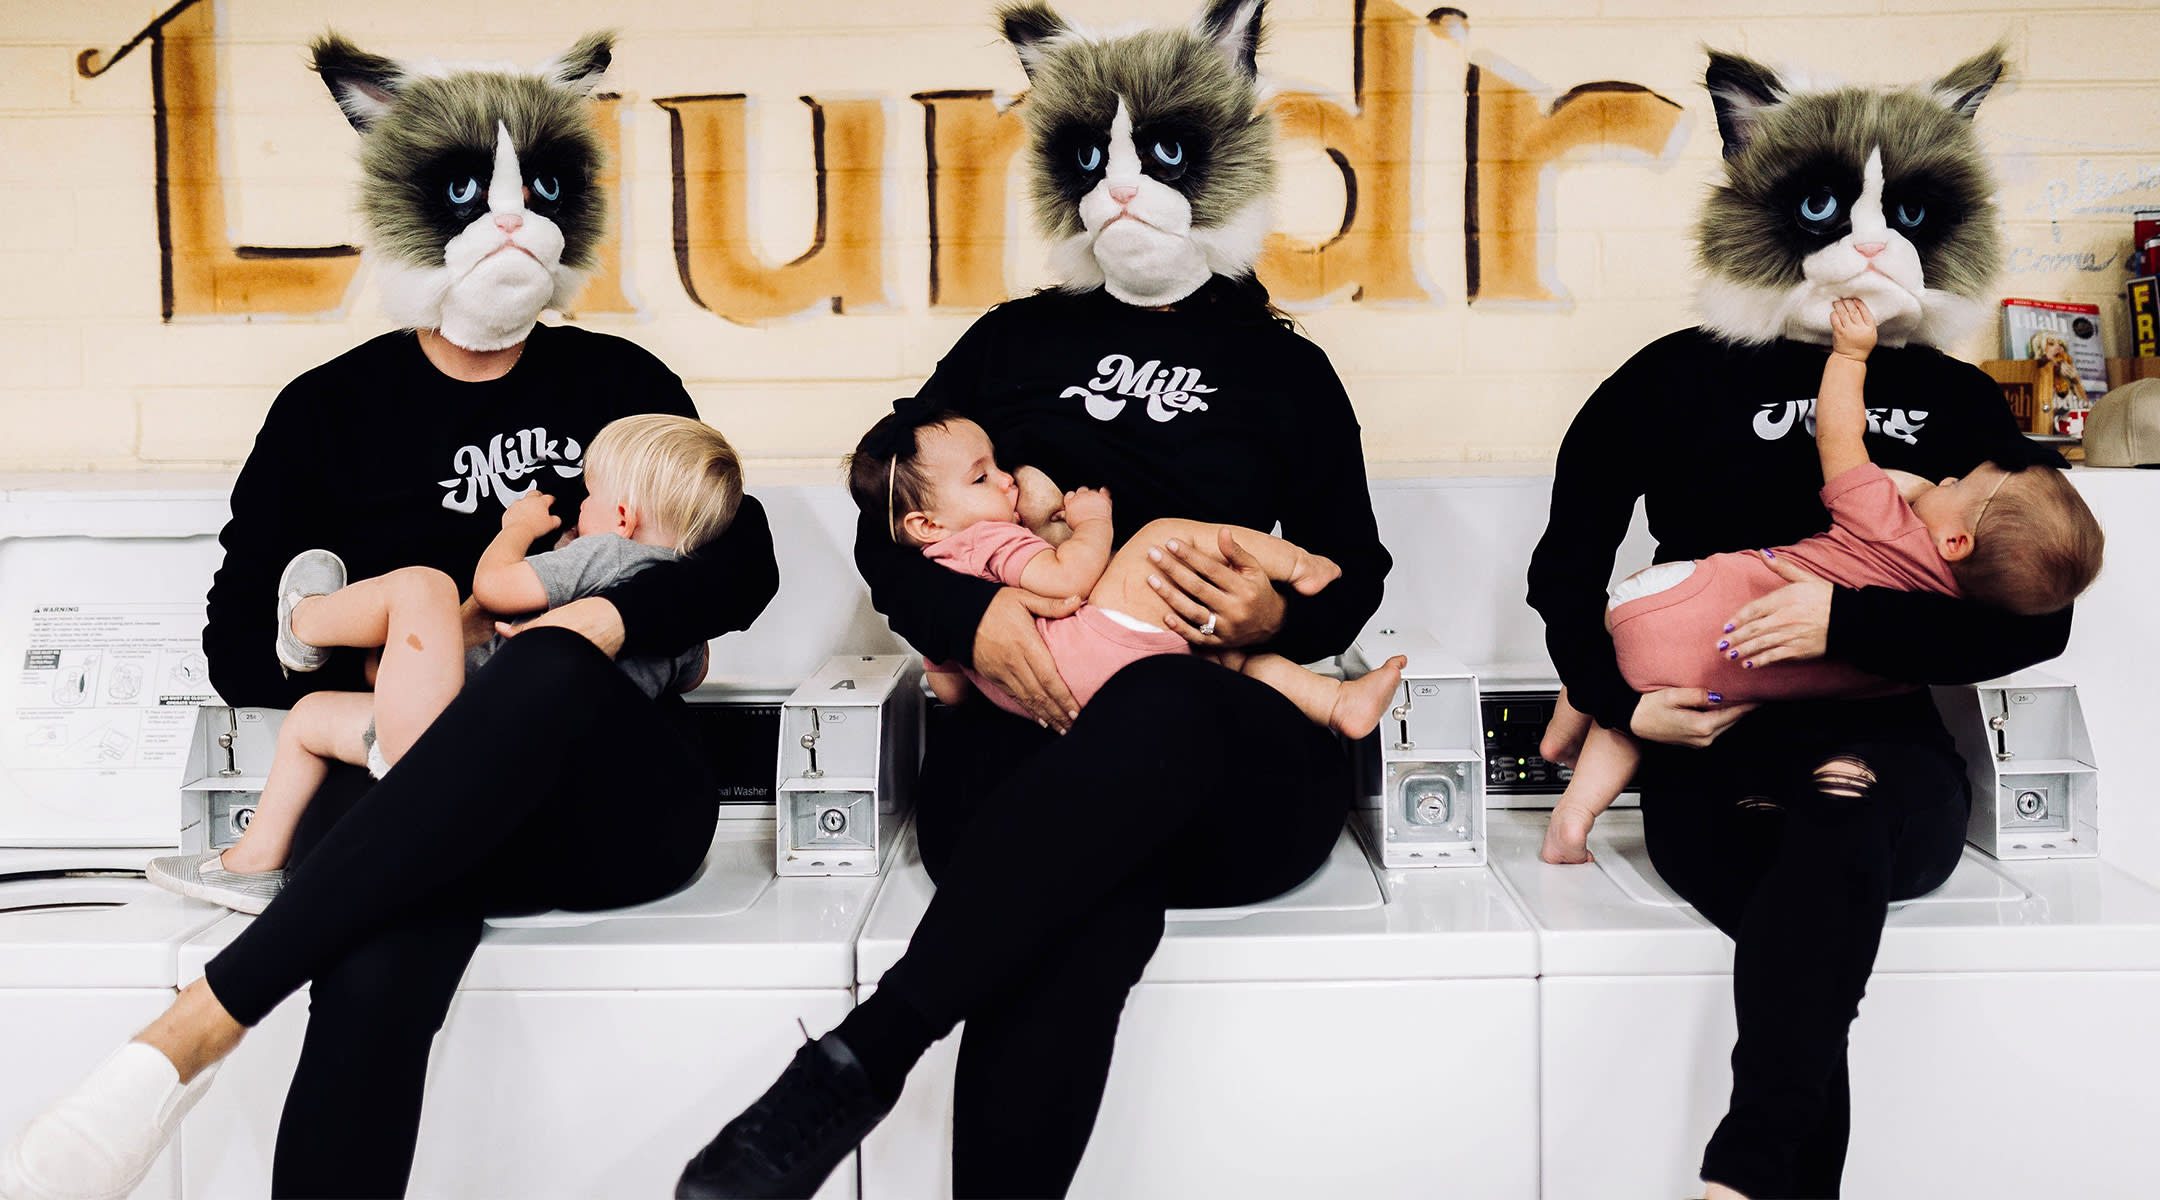 cover up breastfeeding stance image, showing women breastfeeding with cat masks